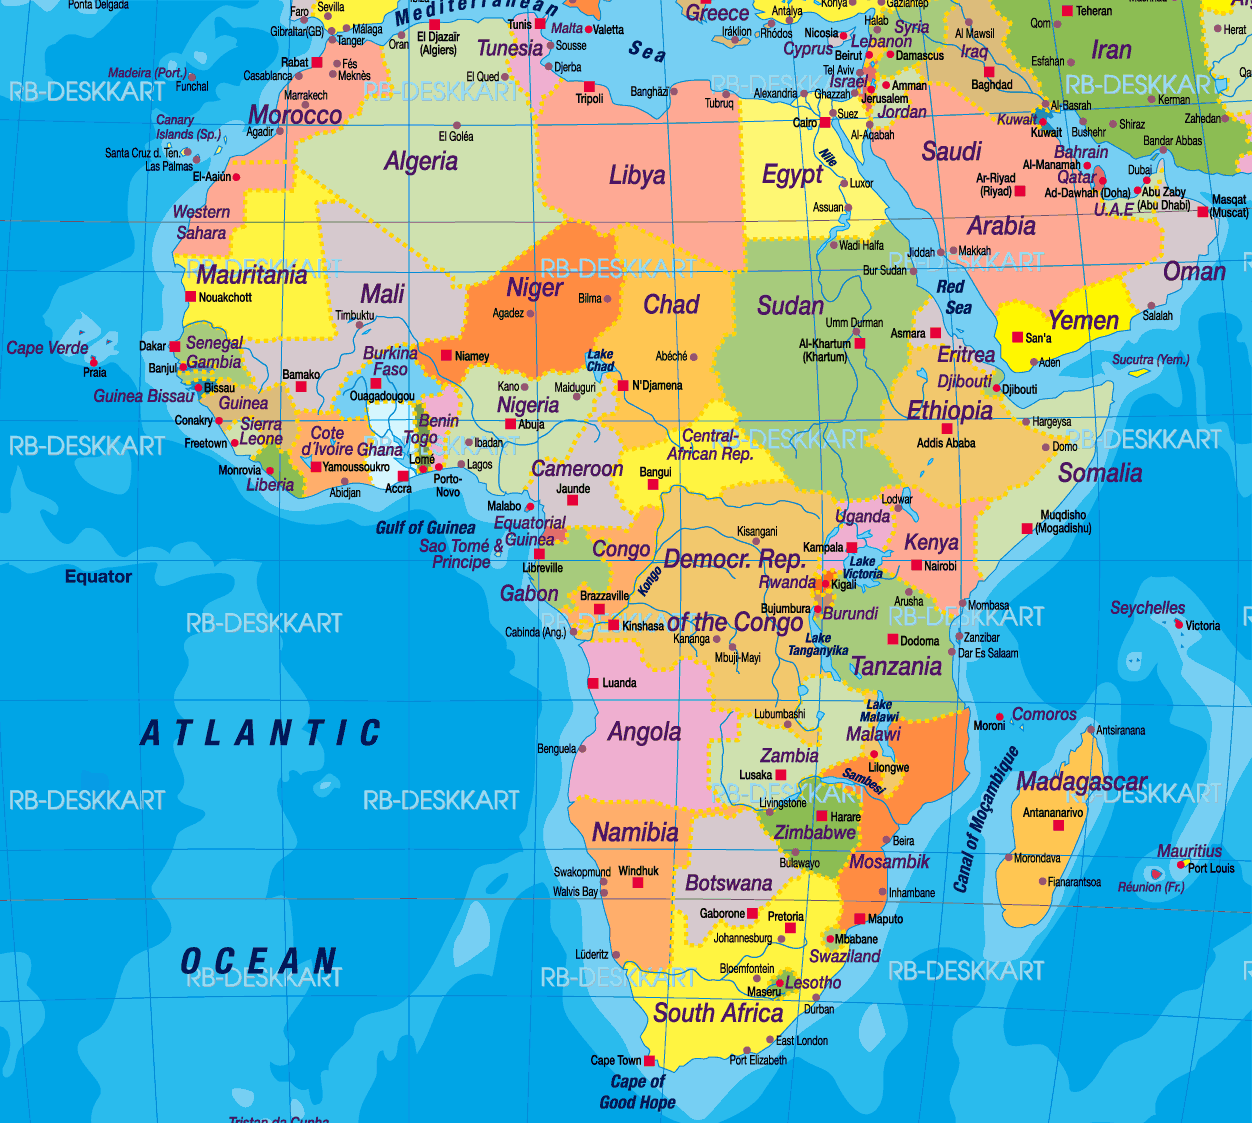 Desktop Wallpaper World Map: Africa Map Wallpapers